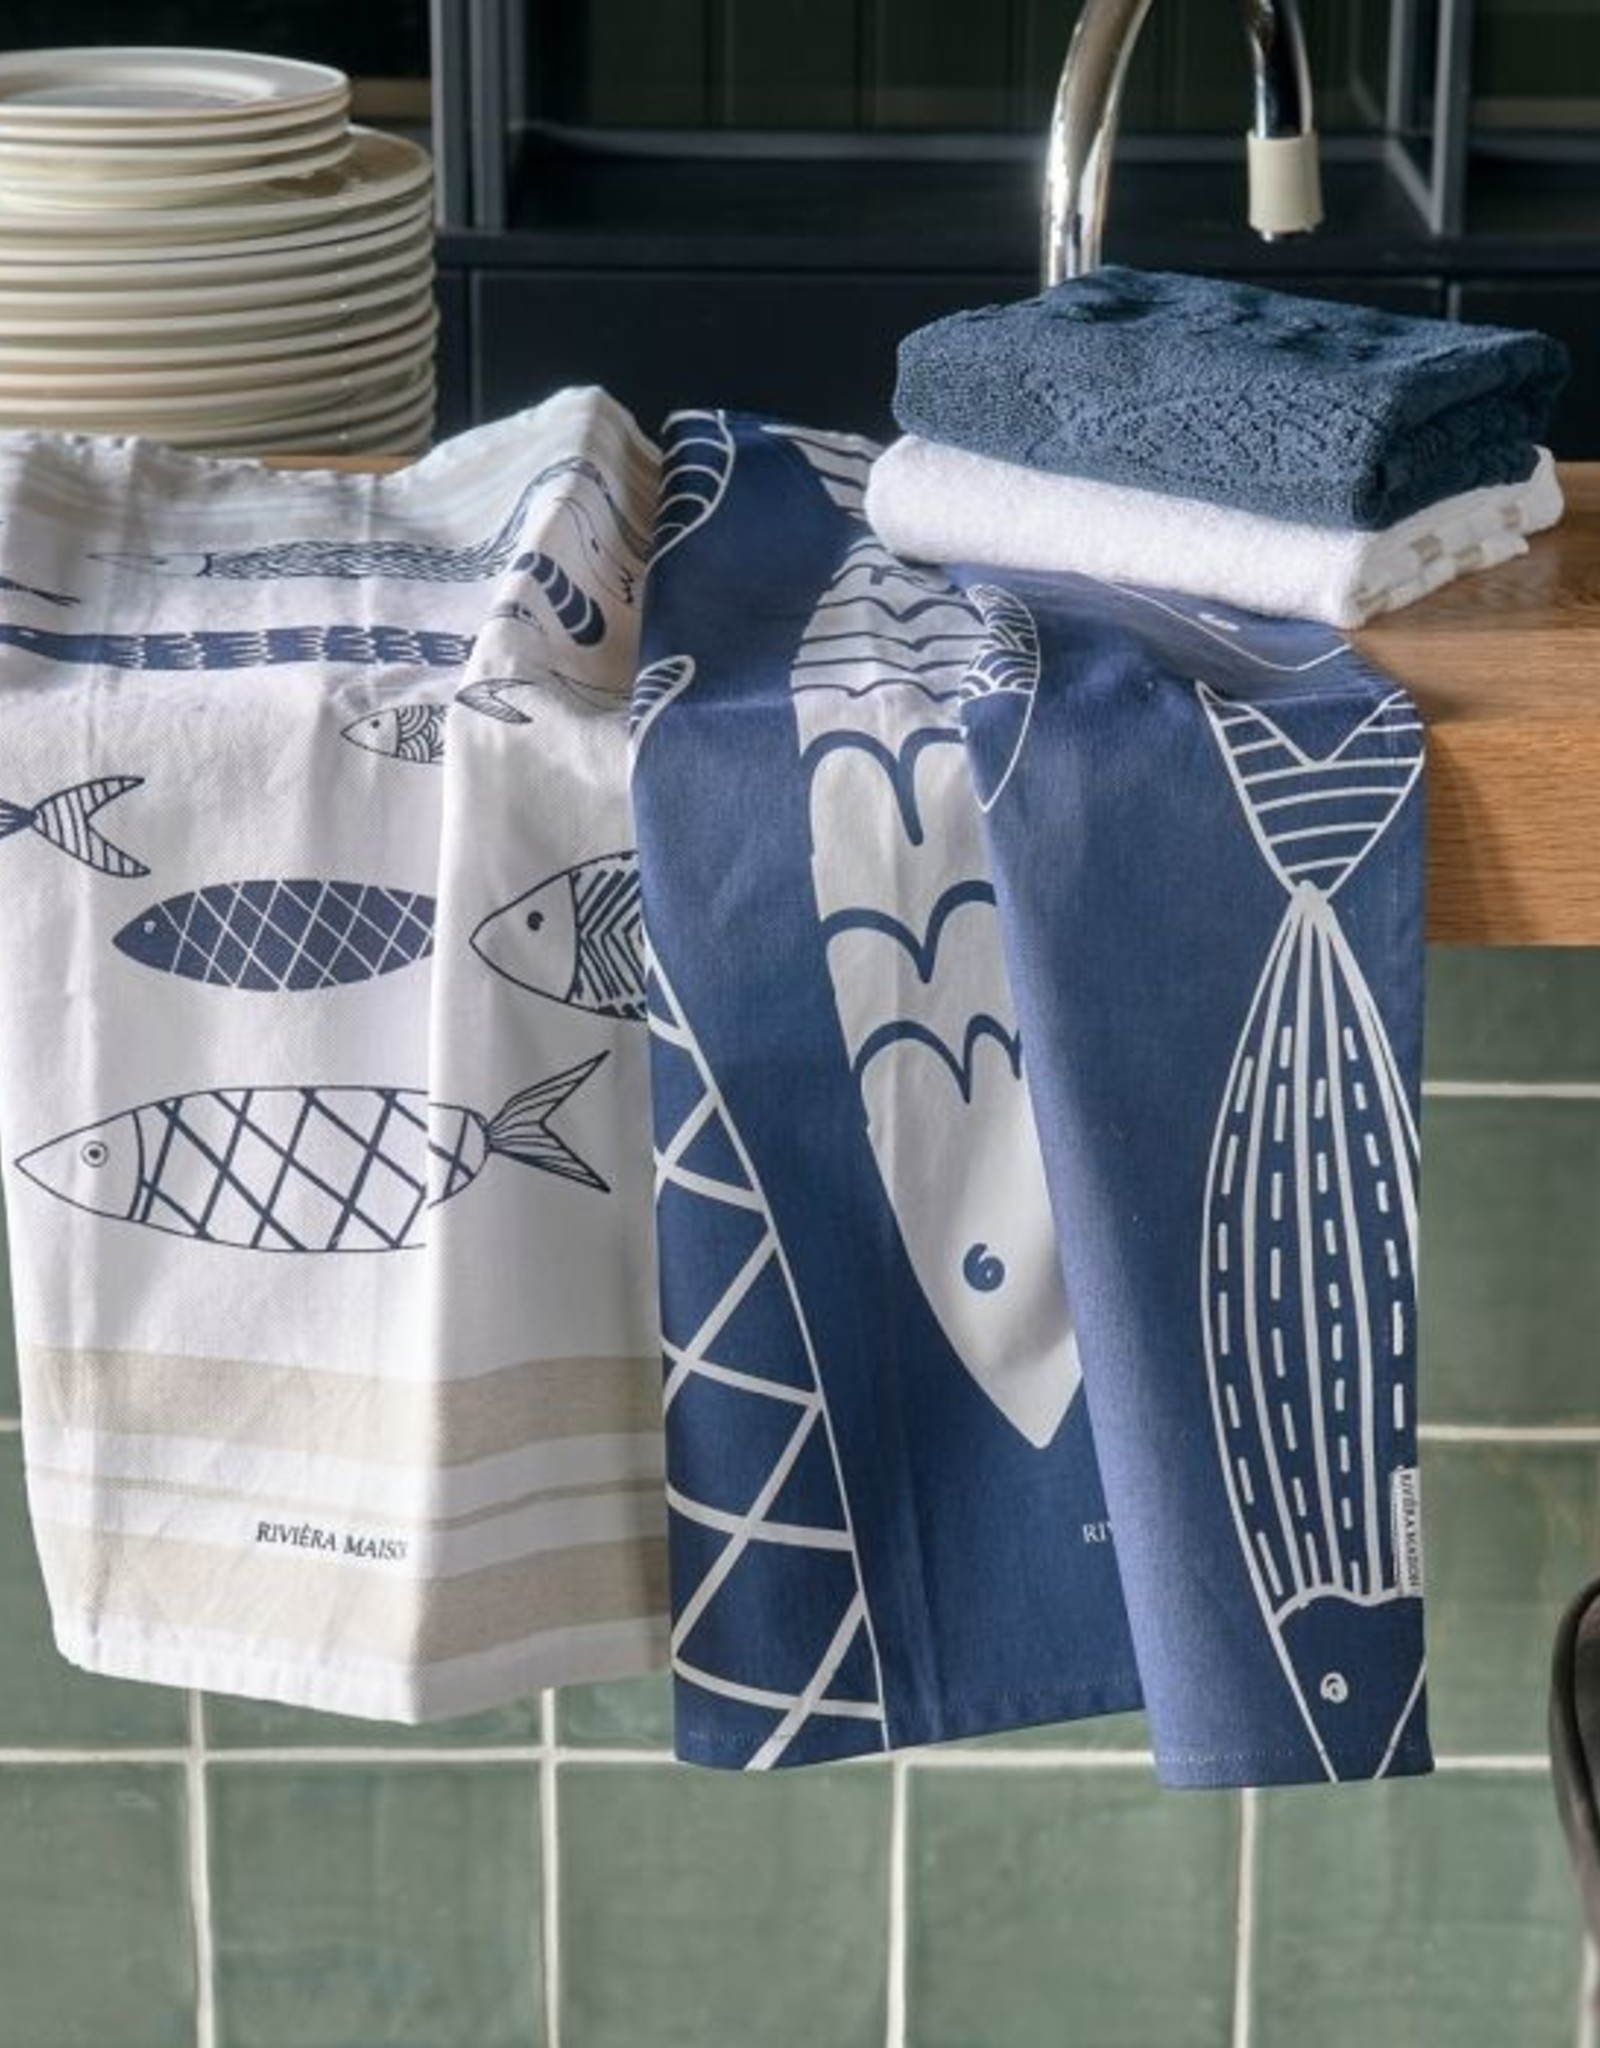 Riviera Maison The Seafood Club Tea Towel 2 pieces